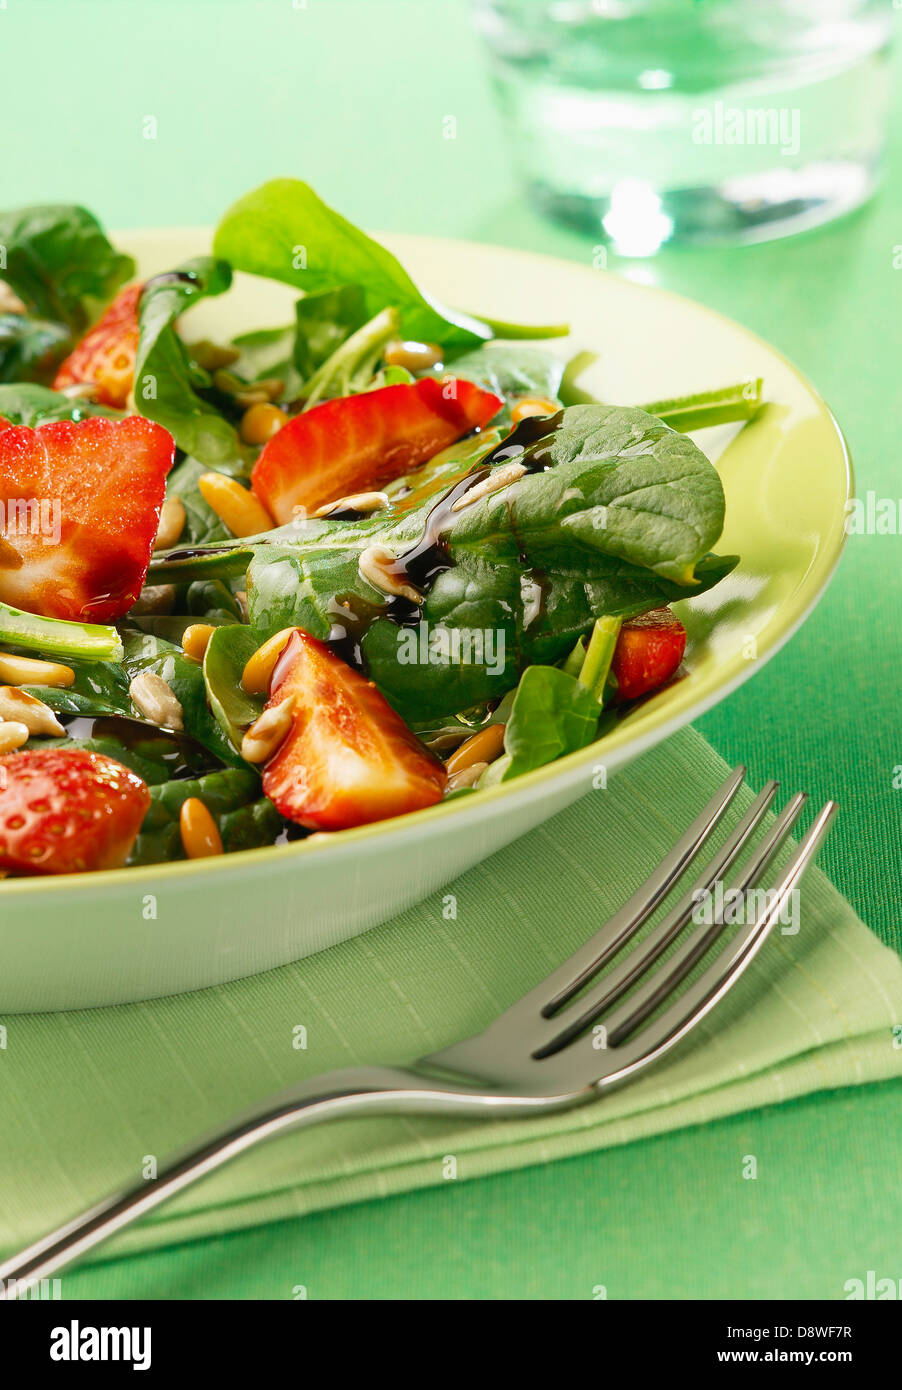 Spinach,strawberry and pine nut salad - Stock Image